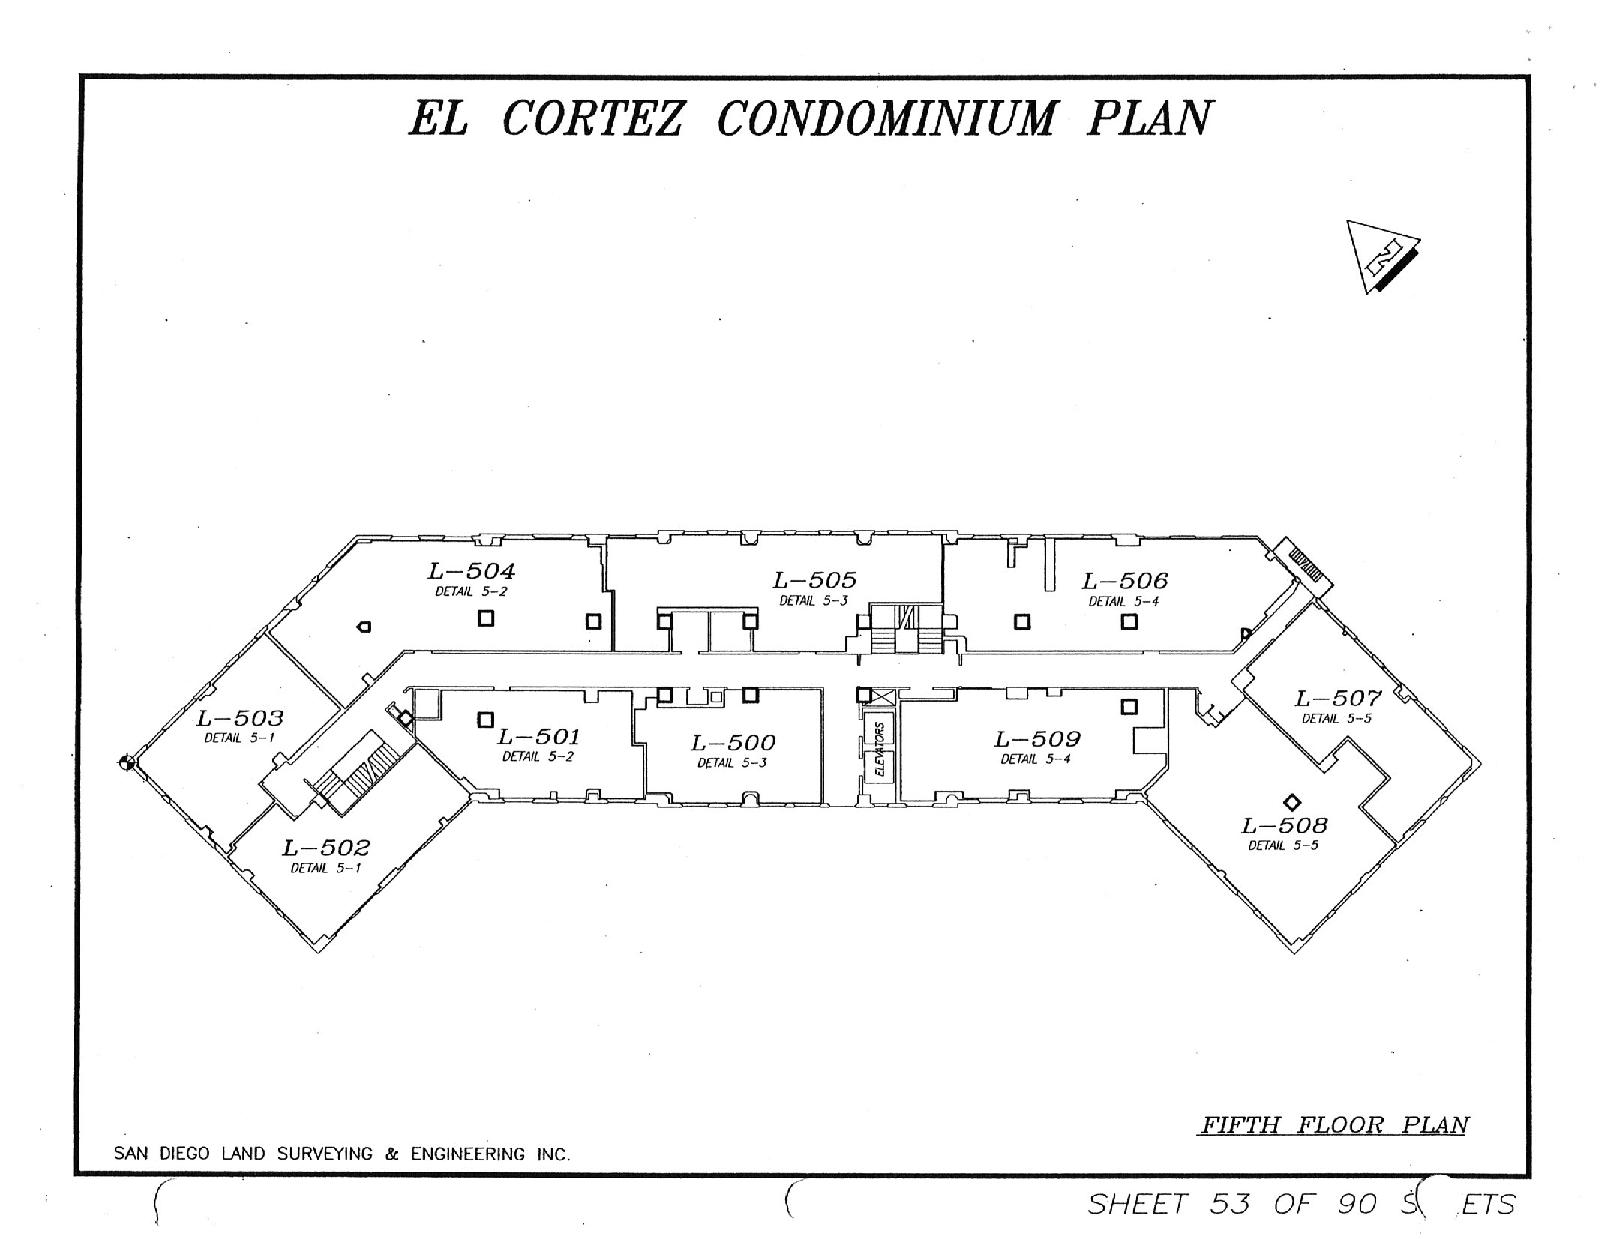 El Cortez Fifth Floor